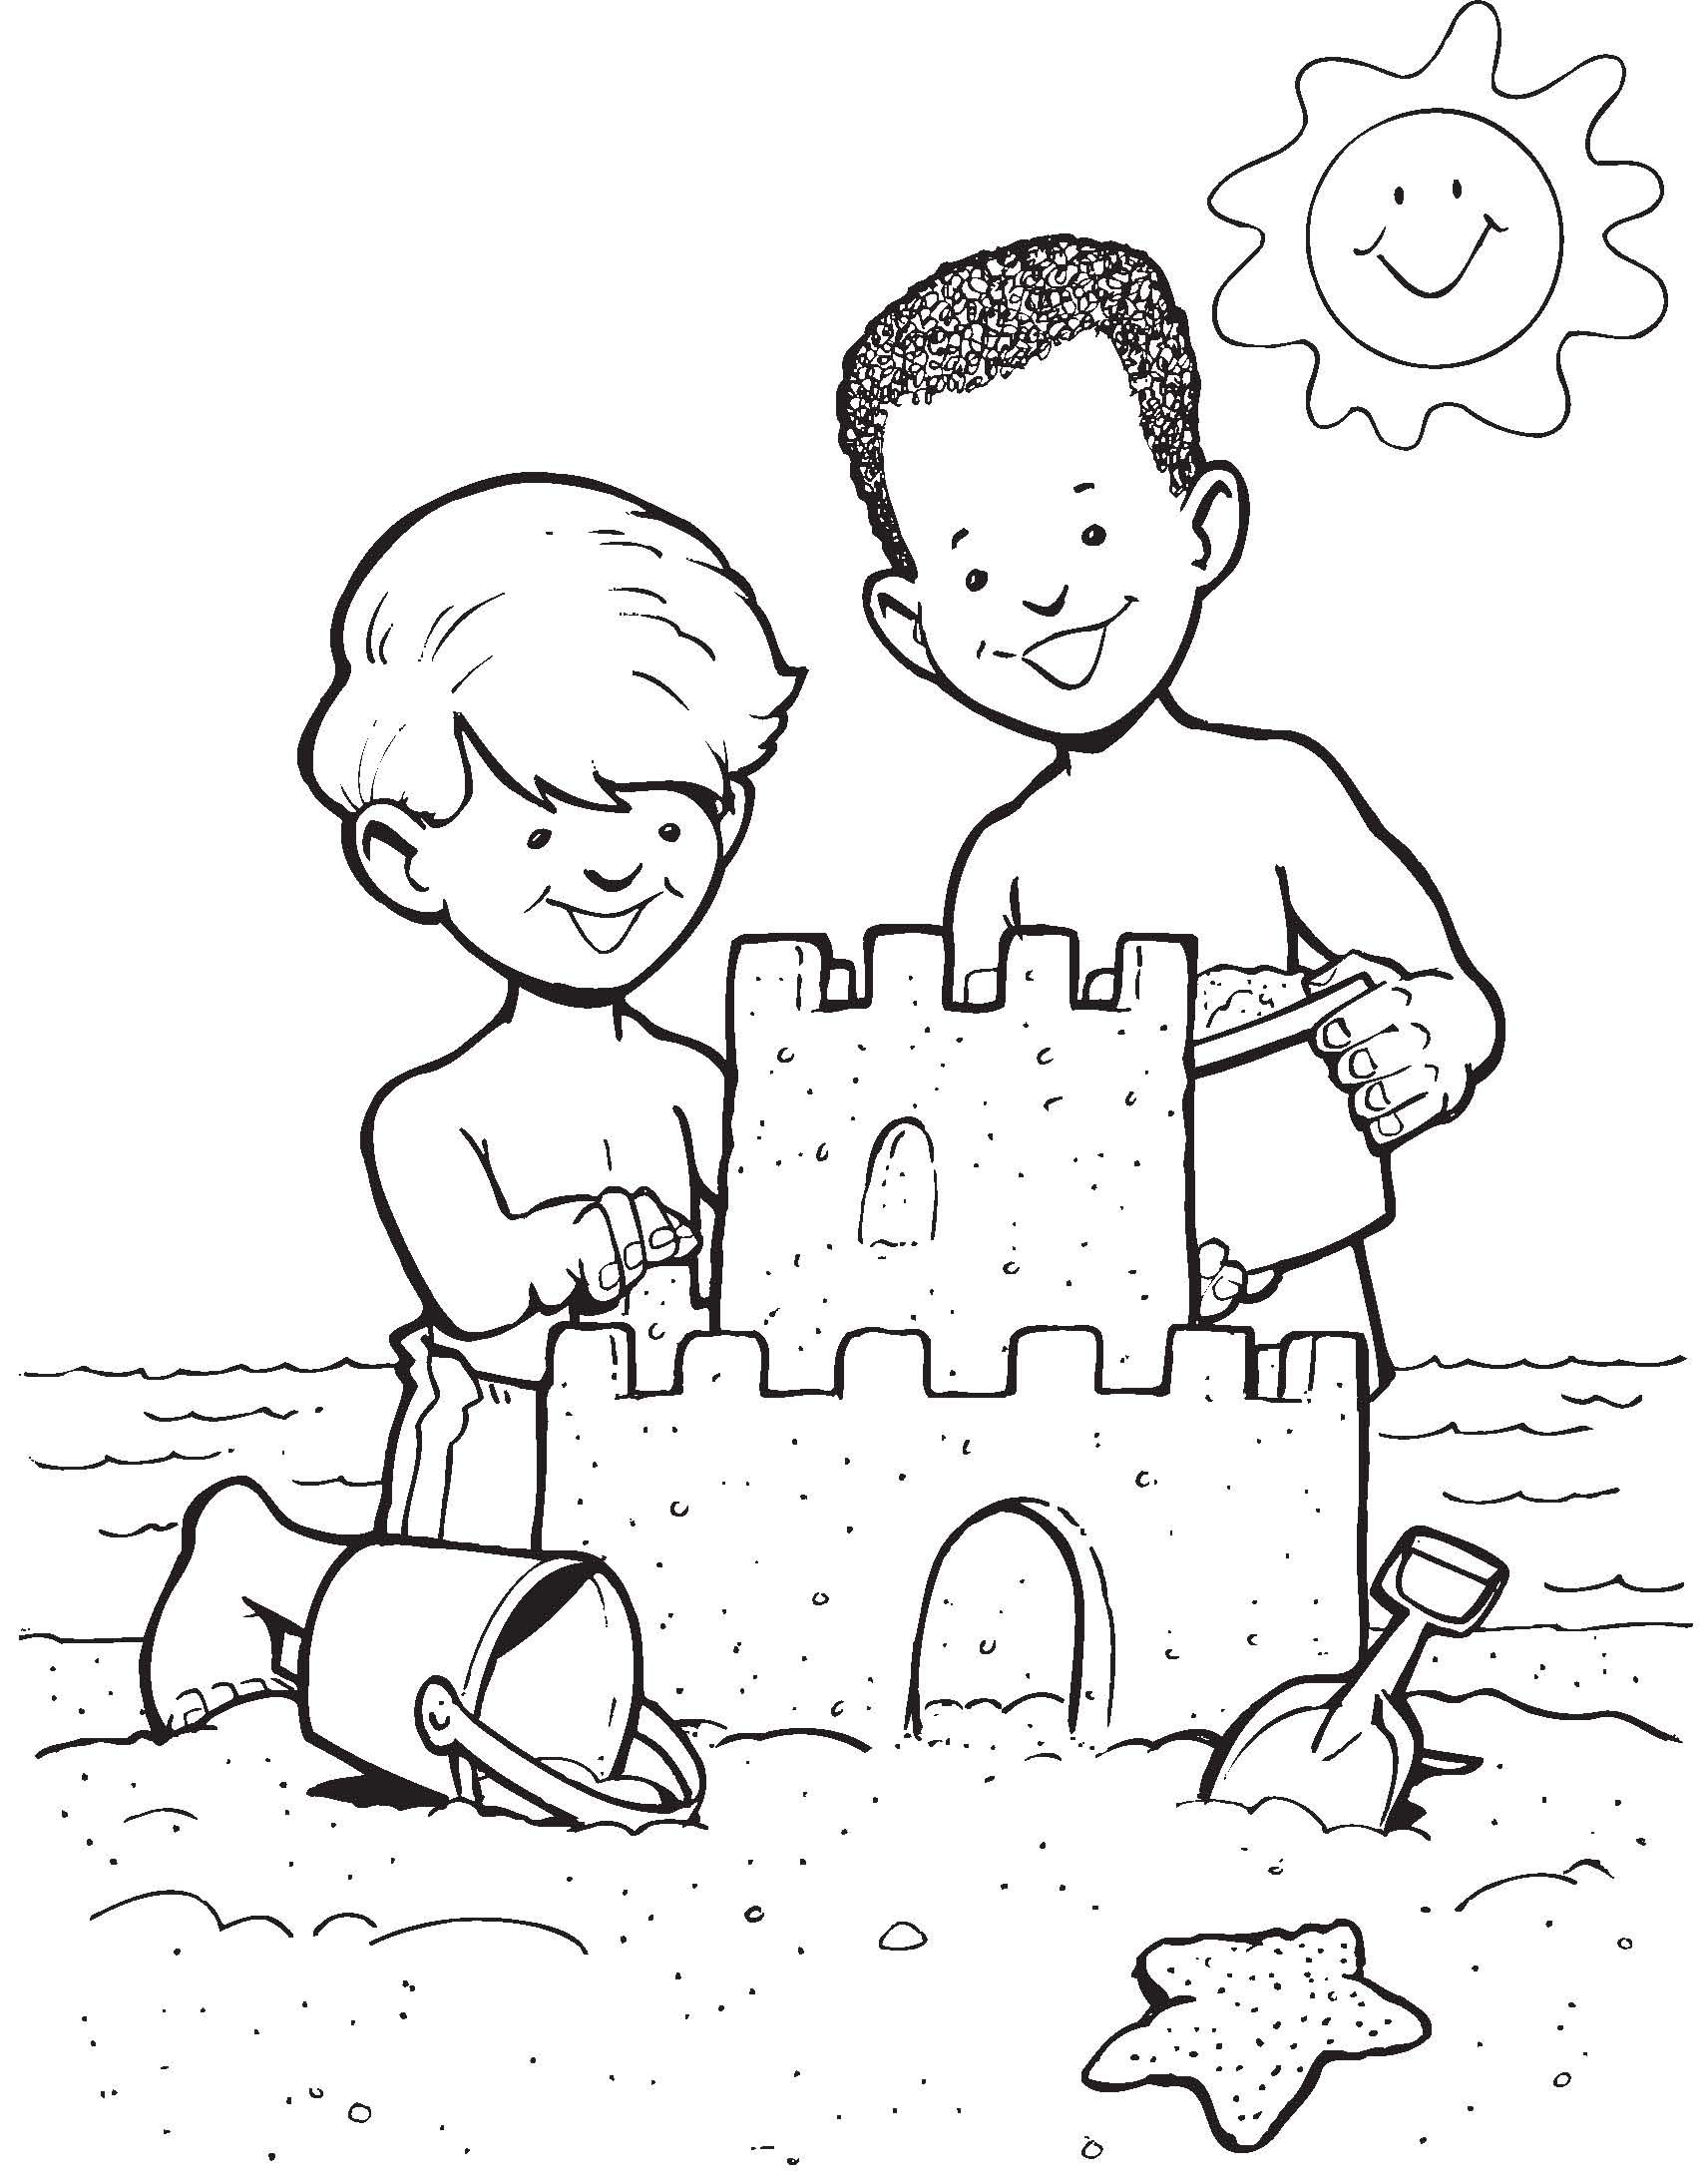 Sandcastle Fun Coloring Sheets Pinterest Fun Sandcastle Coloring Page